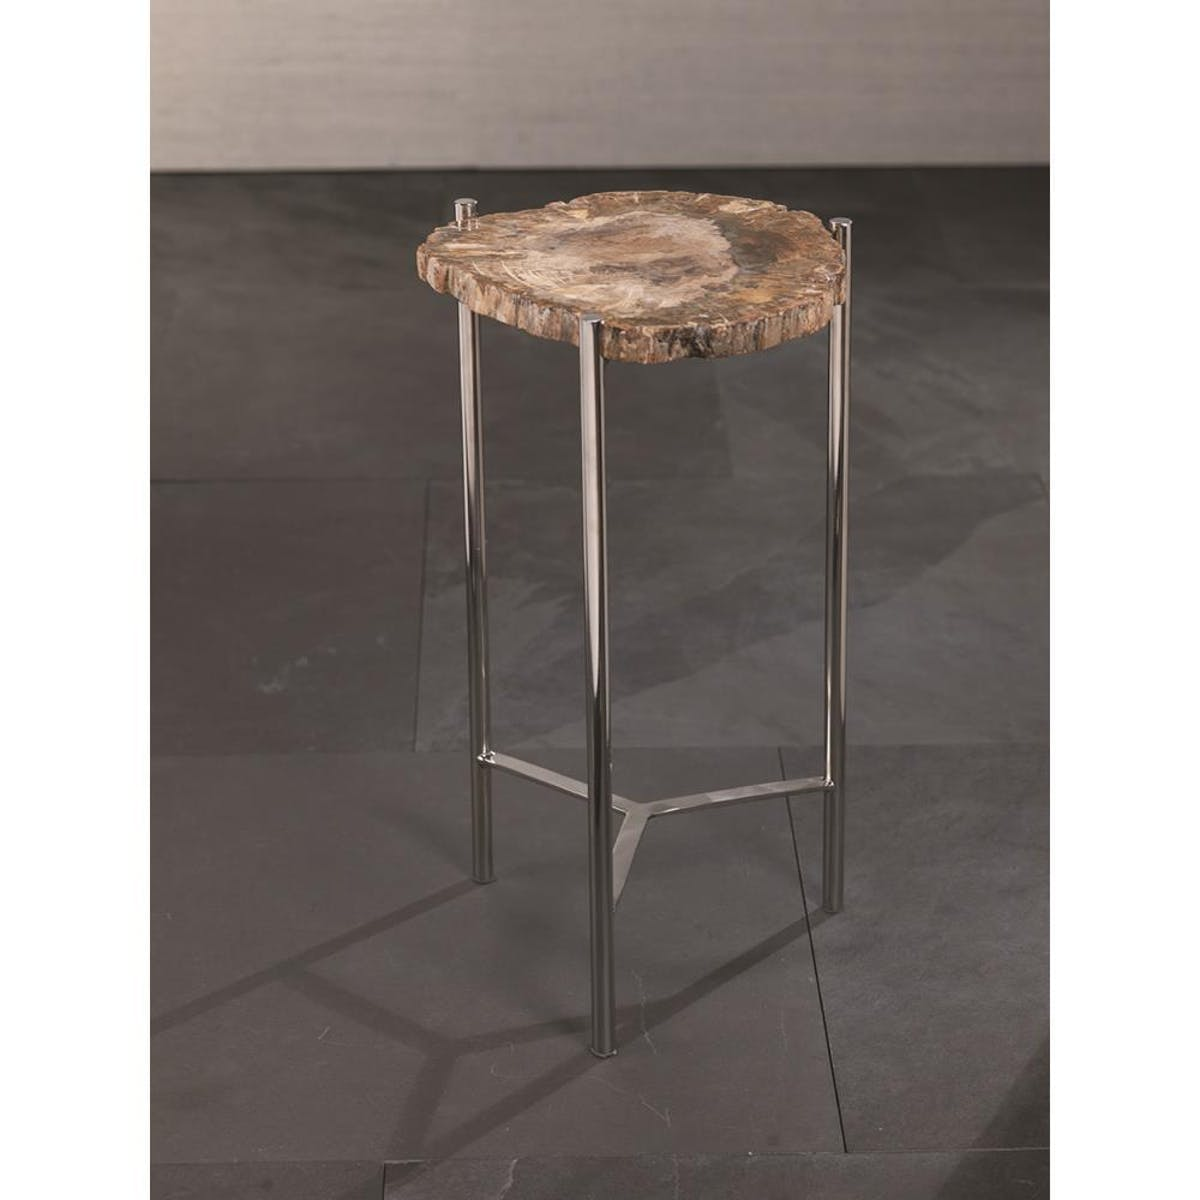 zodax pierce petrified wood accent table inch tall modish tap expand rustic end plans console danish mirrored side unit custom glass tops outdoor dining red nautical lamp mini